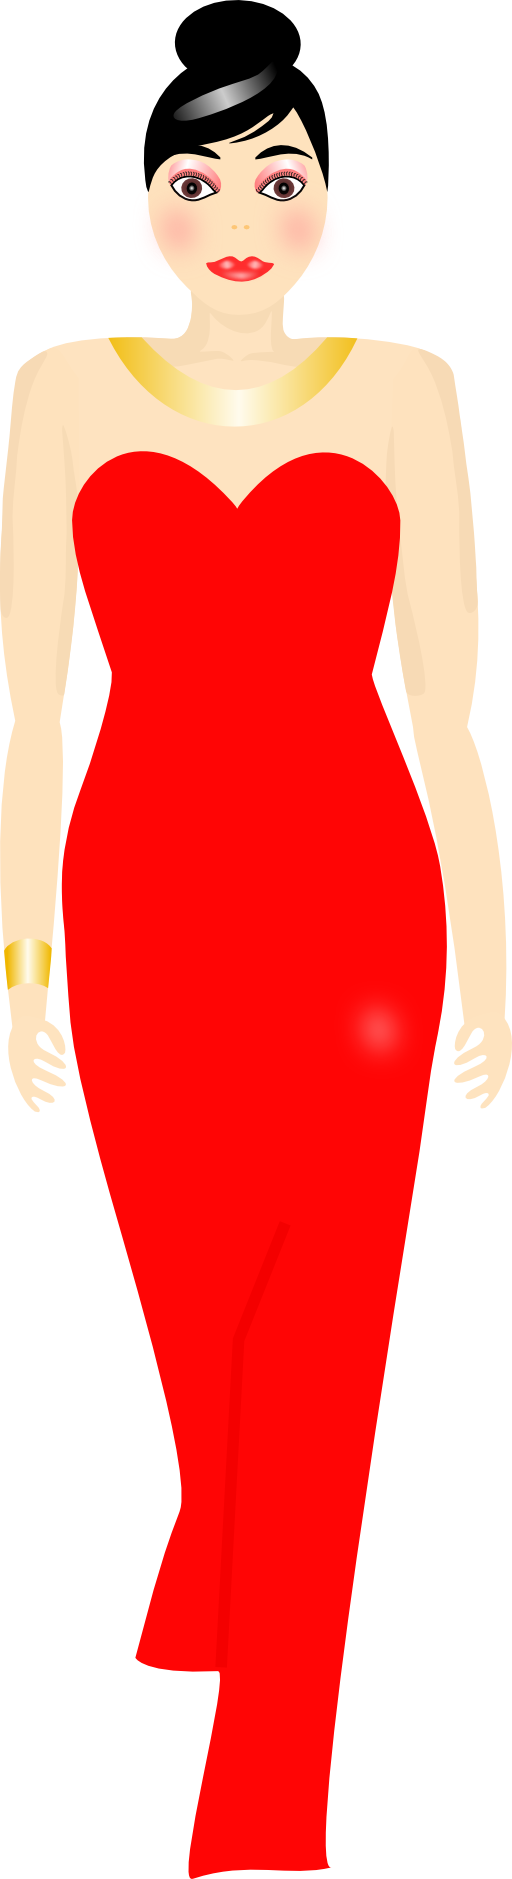 Red Dress Clipart Free Clipart Images